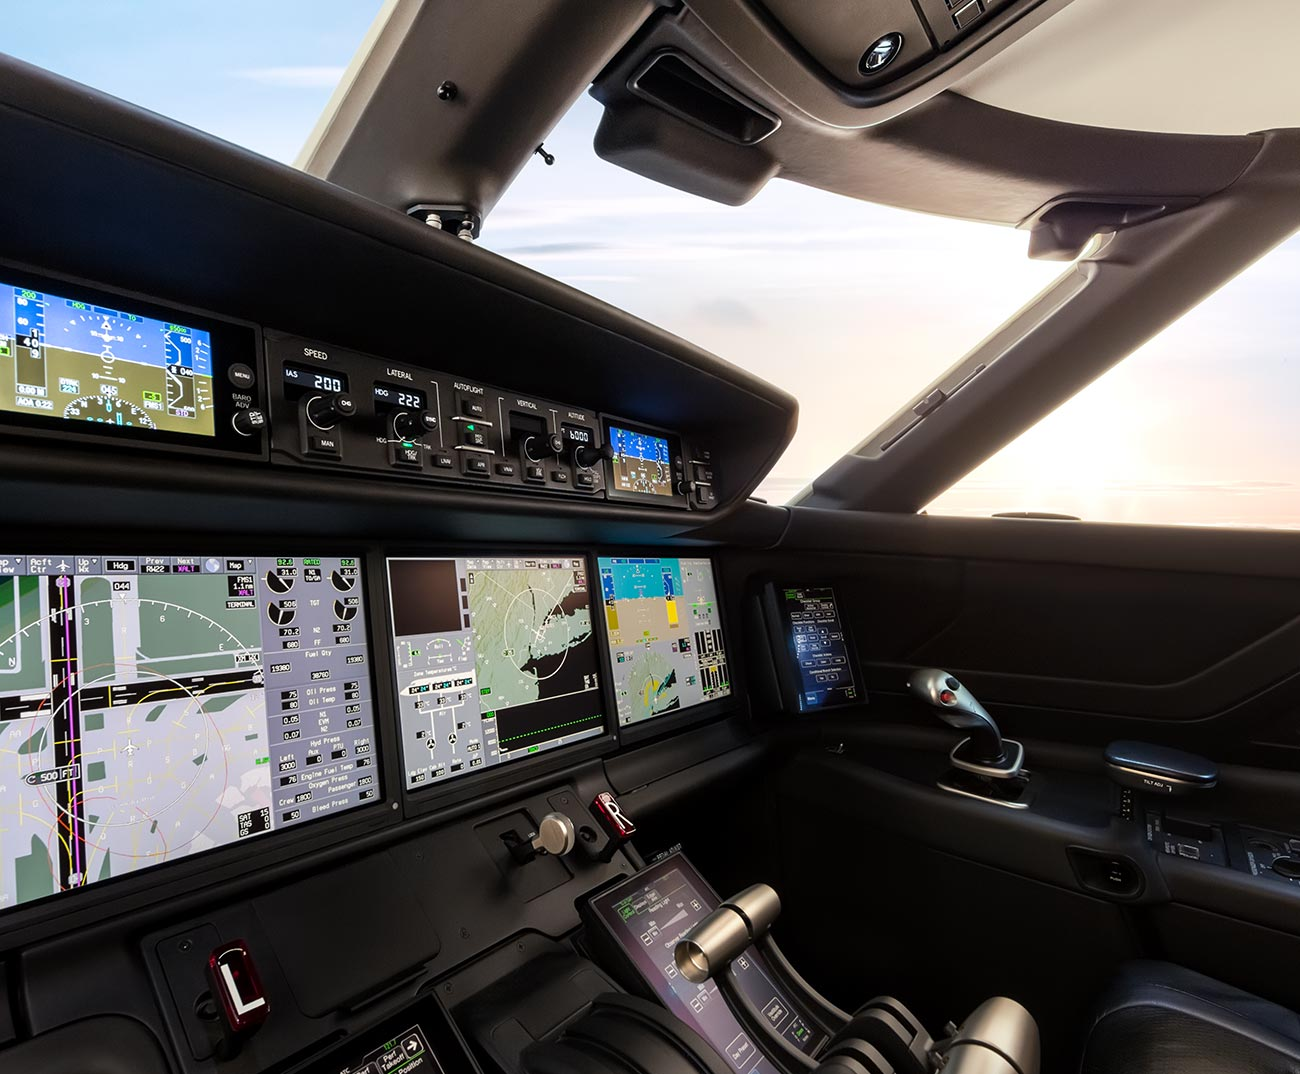 Details of the G600 flight deck